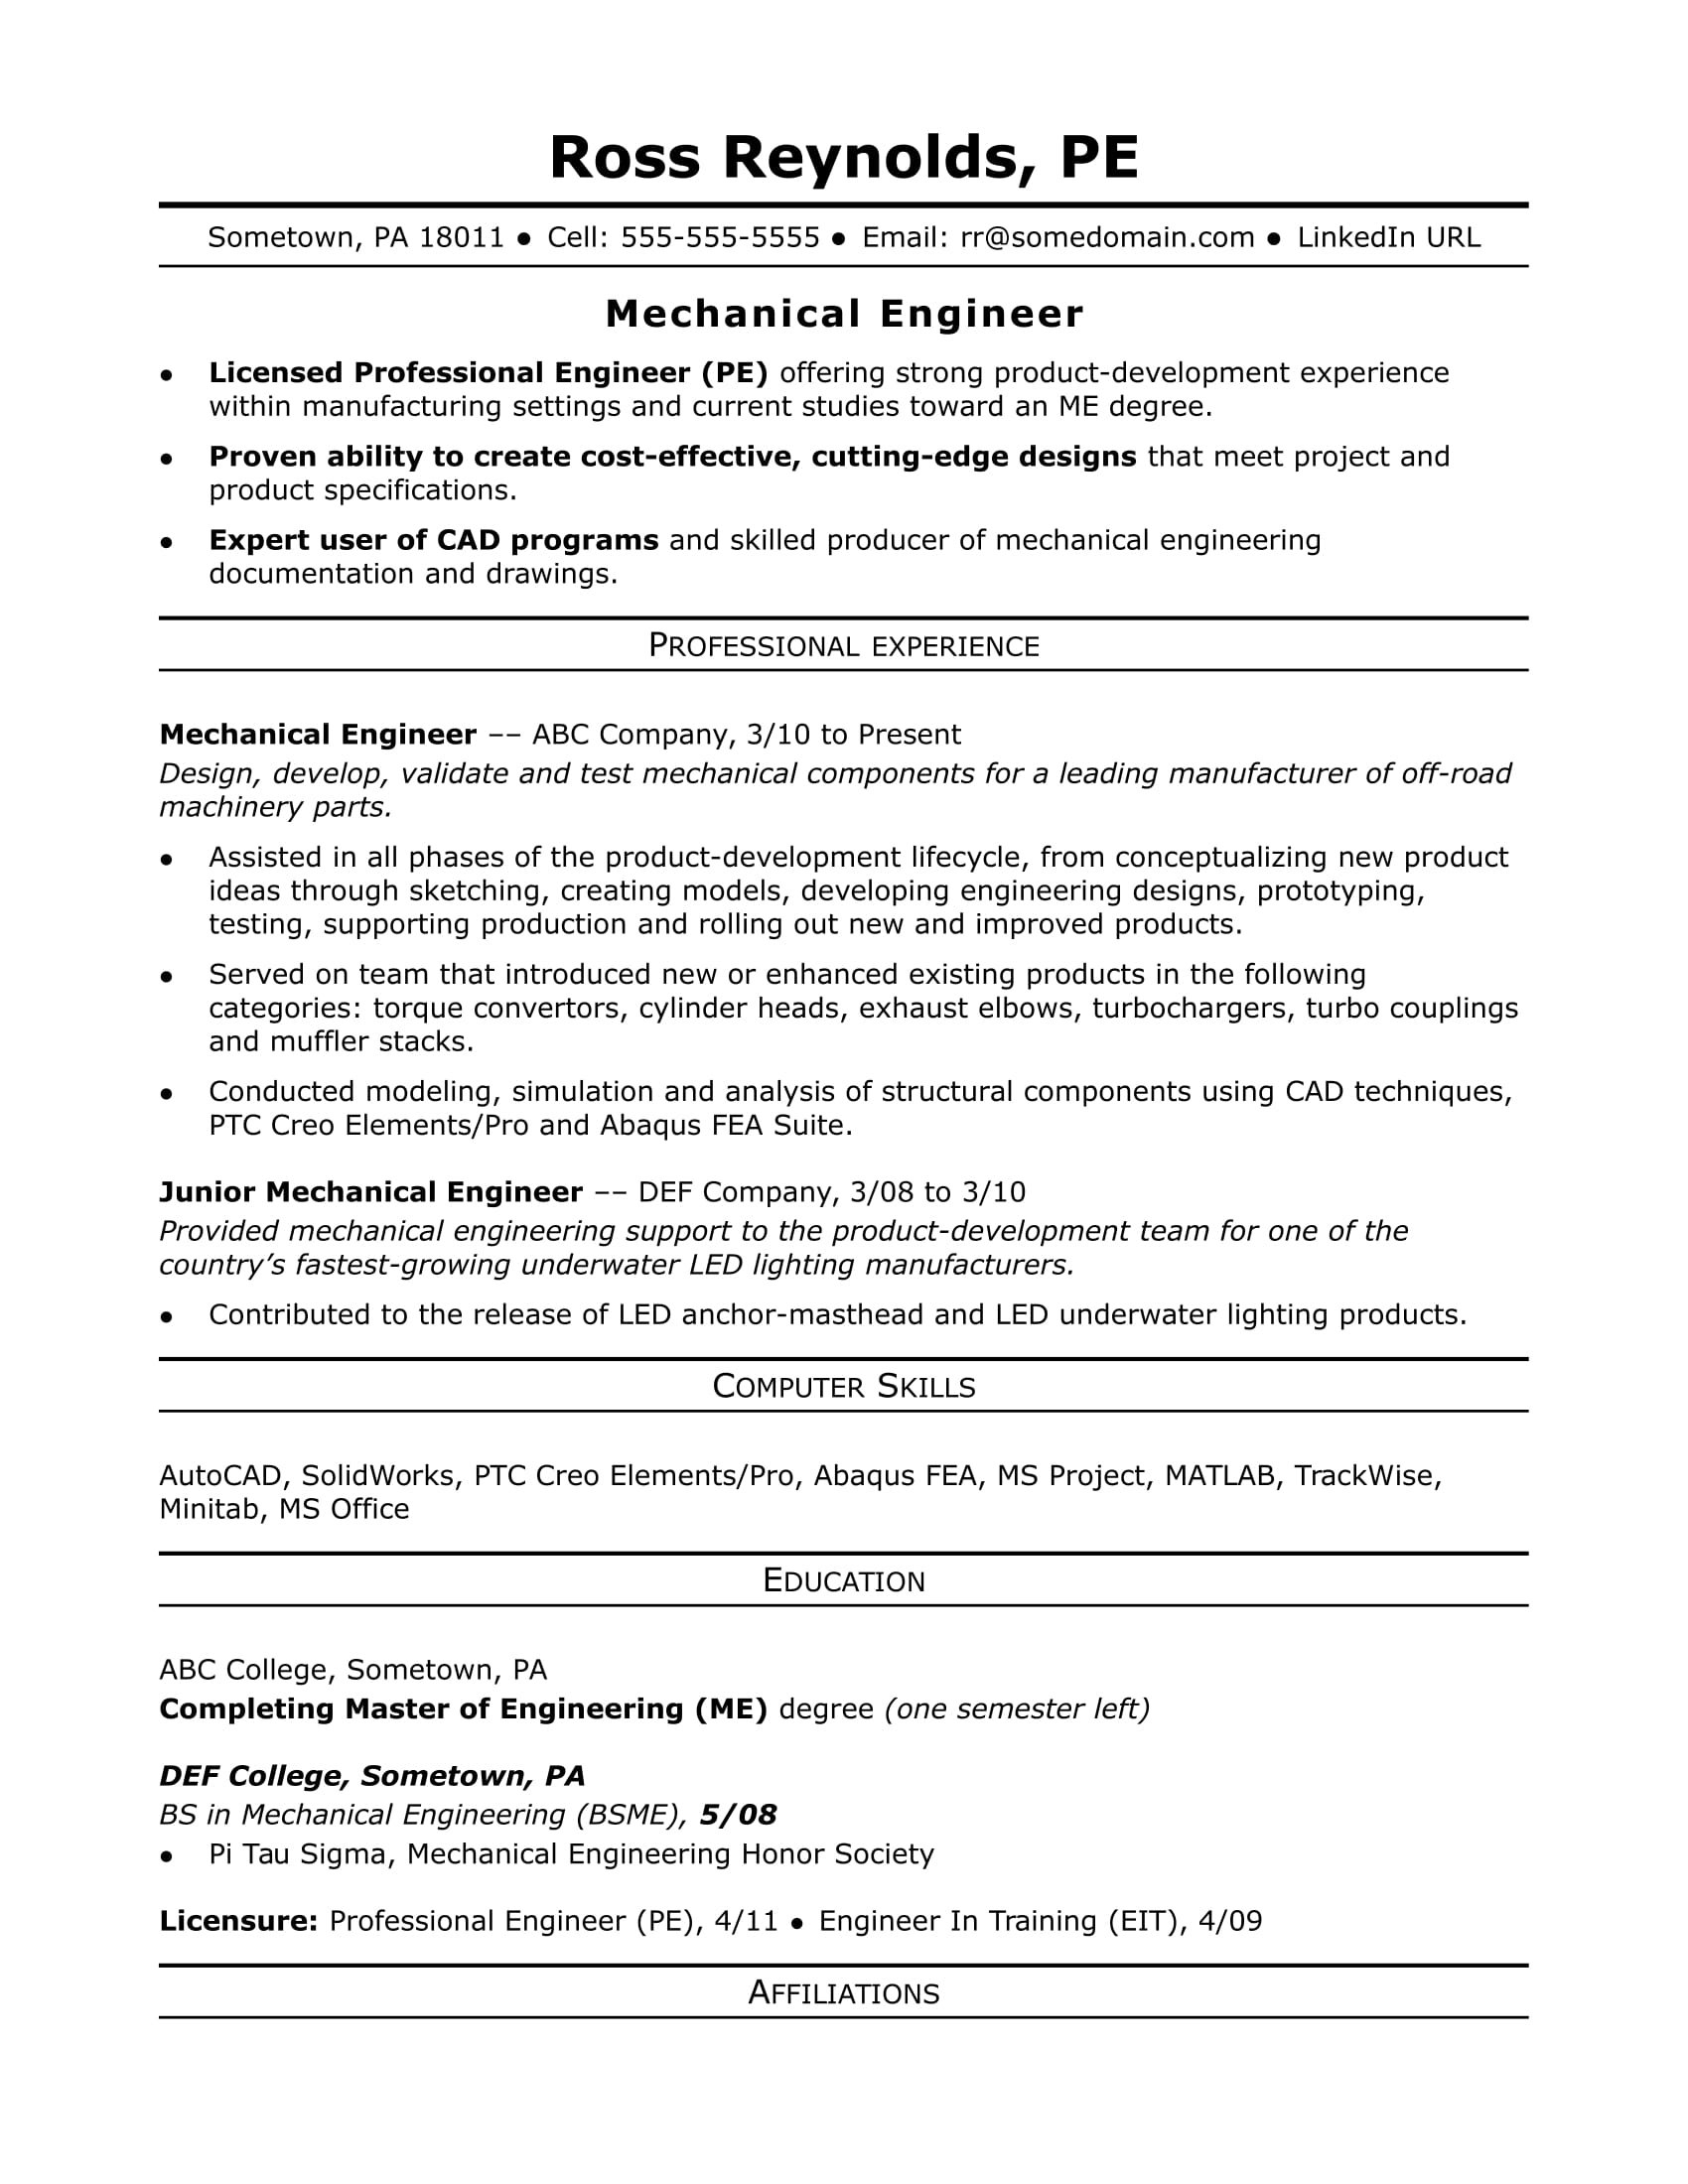 Resume For Mechanical Engineer Experience Essay Writing University